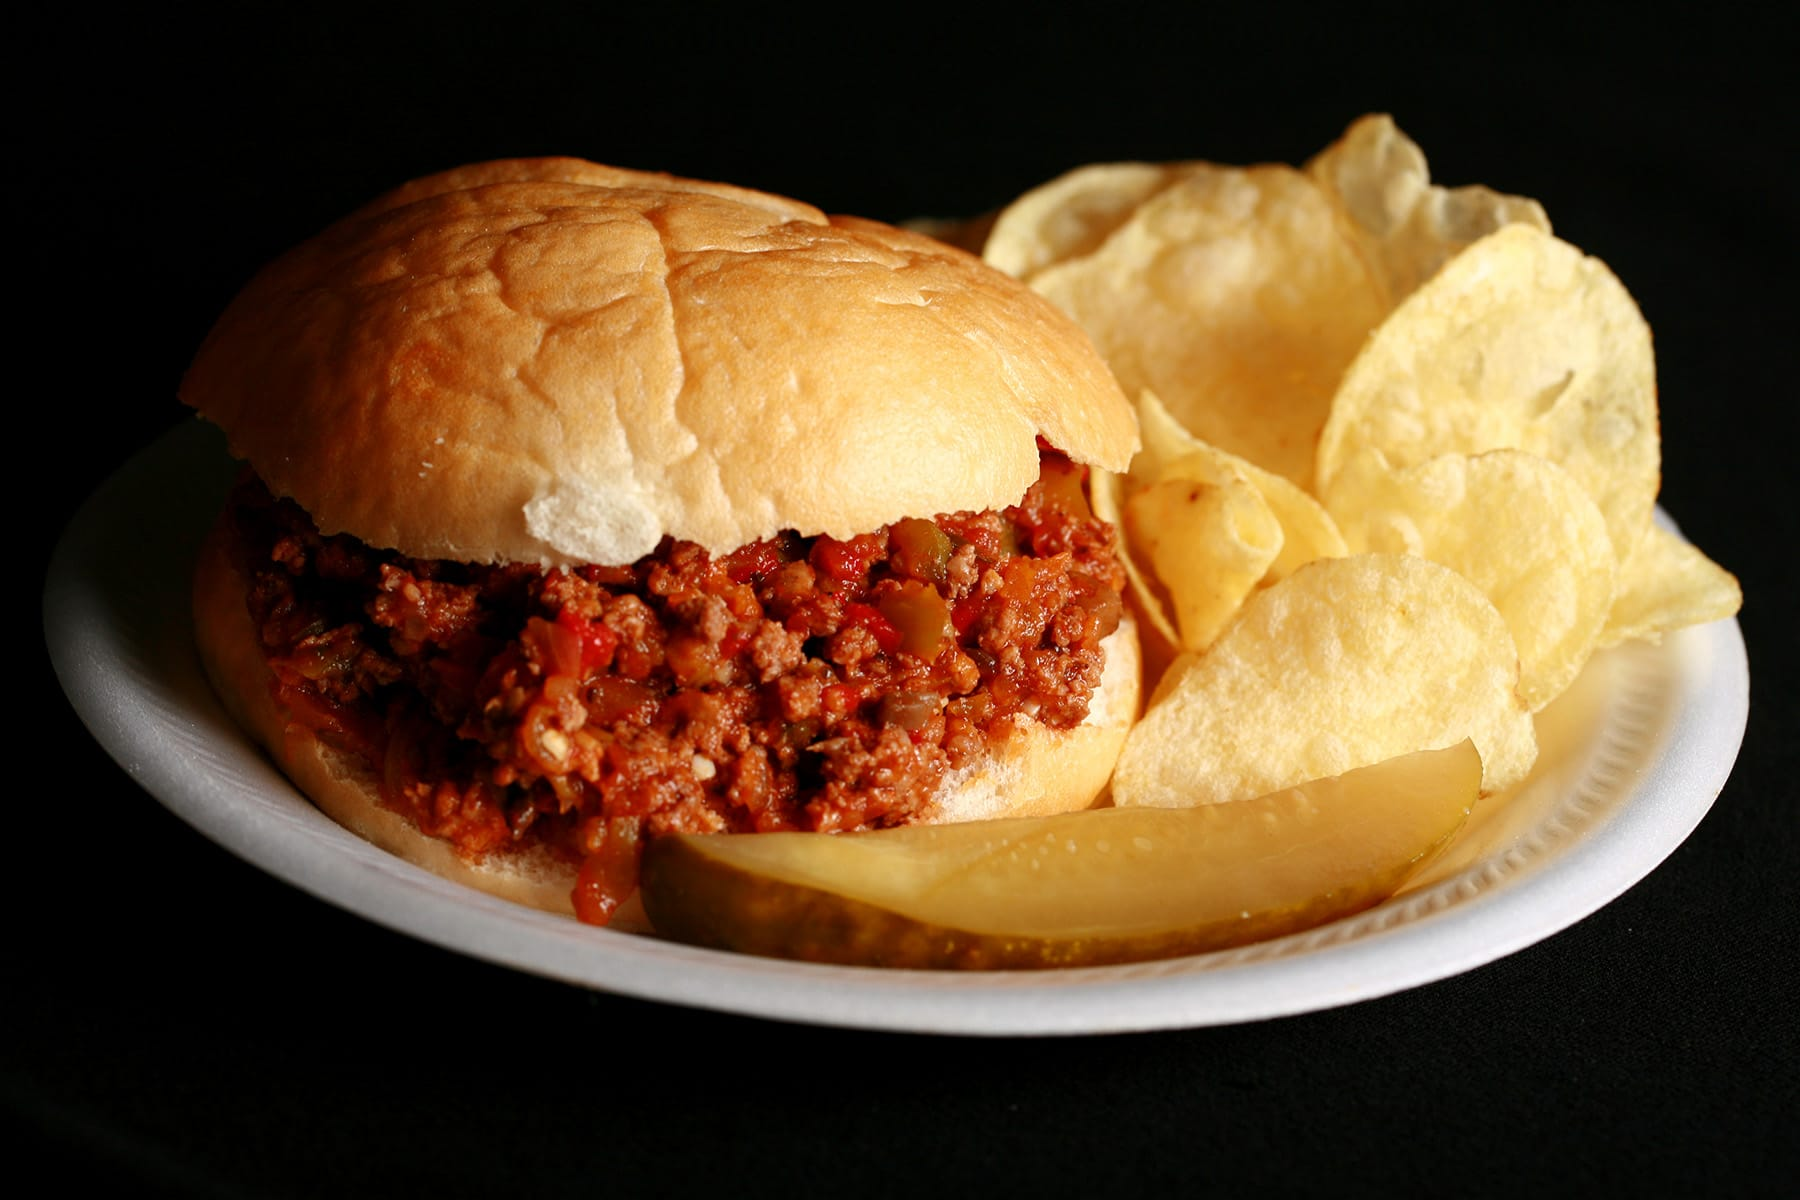 A Sloppy Joes sandwich on a paper plate, with chips and a pickle spear.